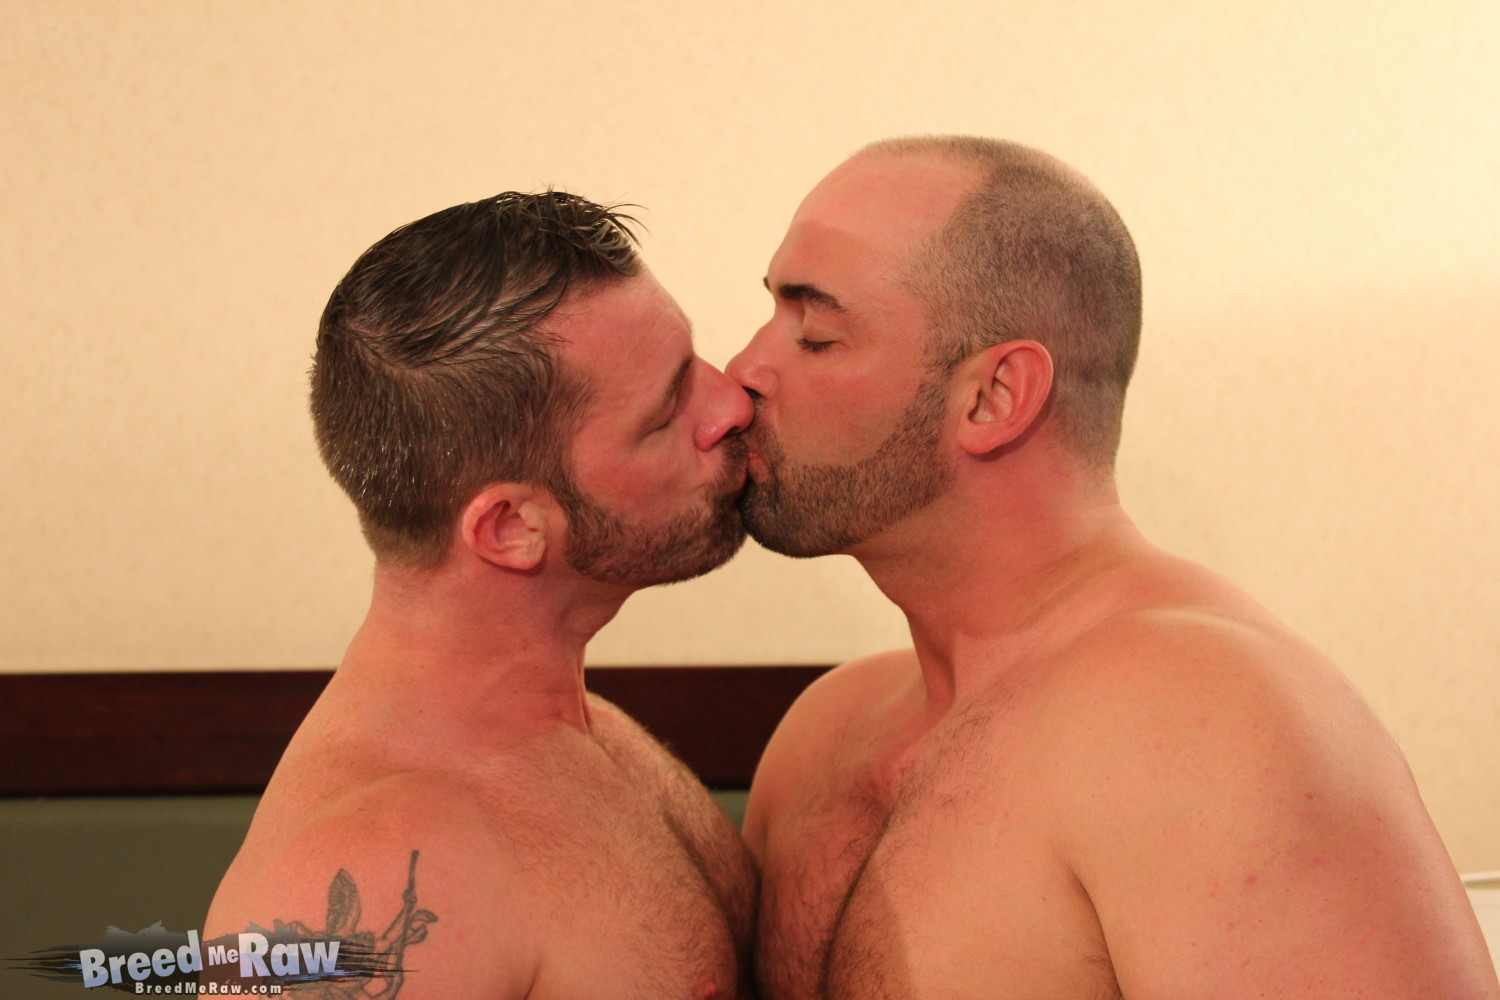 Breed Me Raw Tyler Reed and Morgan Black 09 Amateur Hung Muscle Studs Rimming and Barebacking